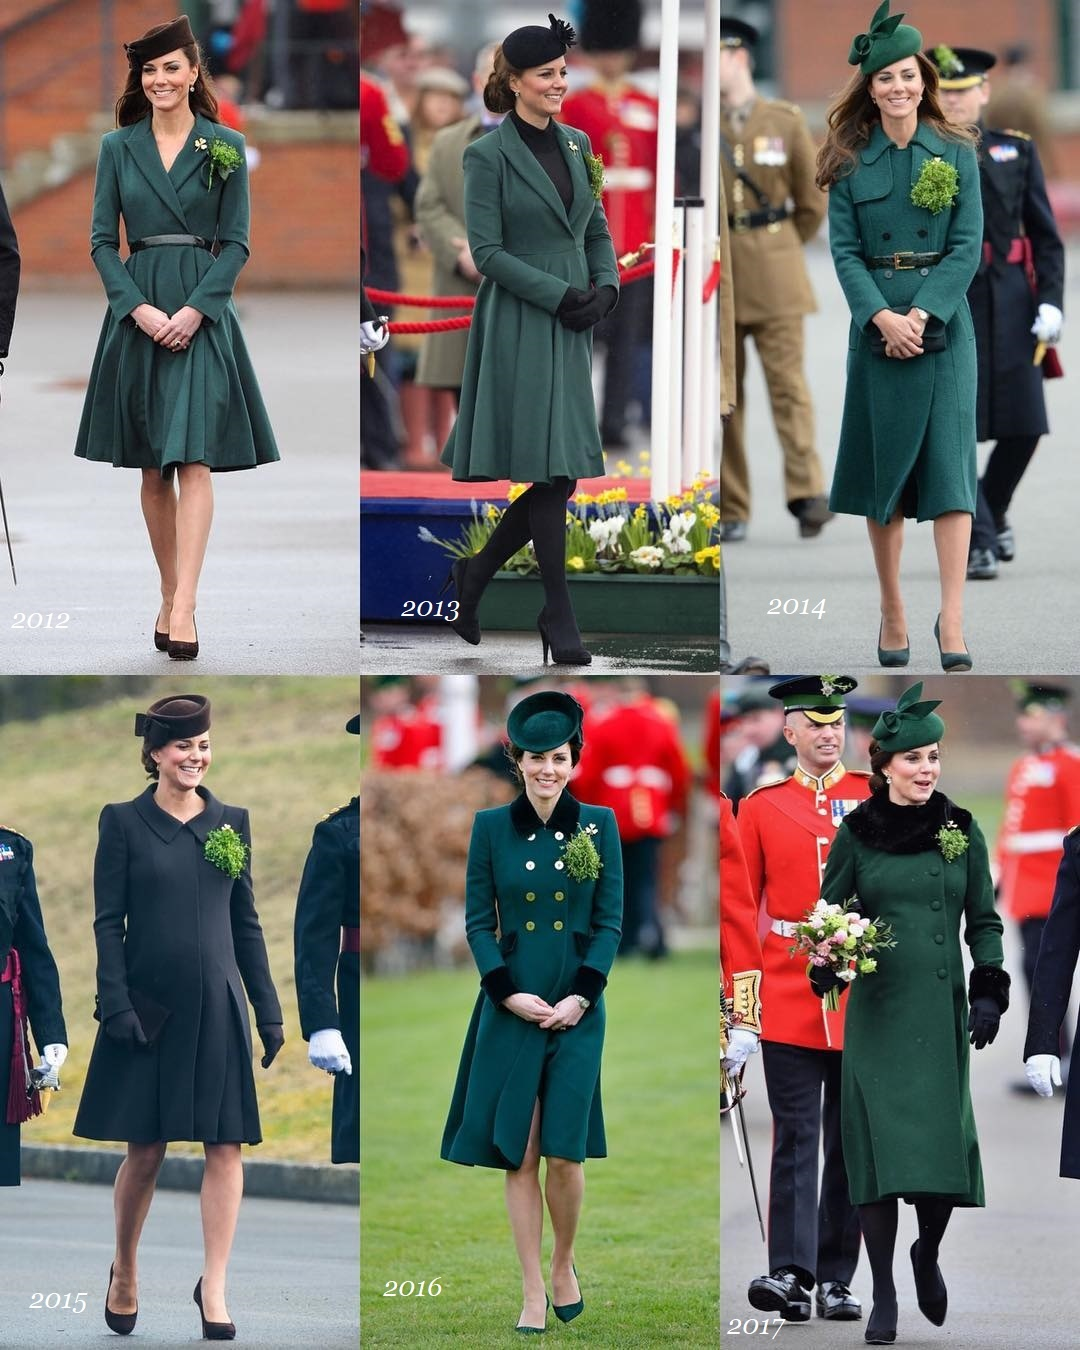 Since her marriage to Prince William, The Duchess of Cambridge, has attended the St. Patrick's Day Parade 6 times where she present the Irish guards with the sprig of Shamrock.